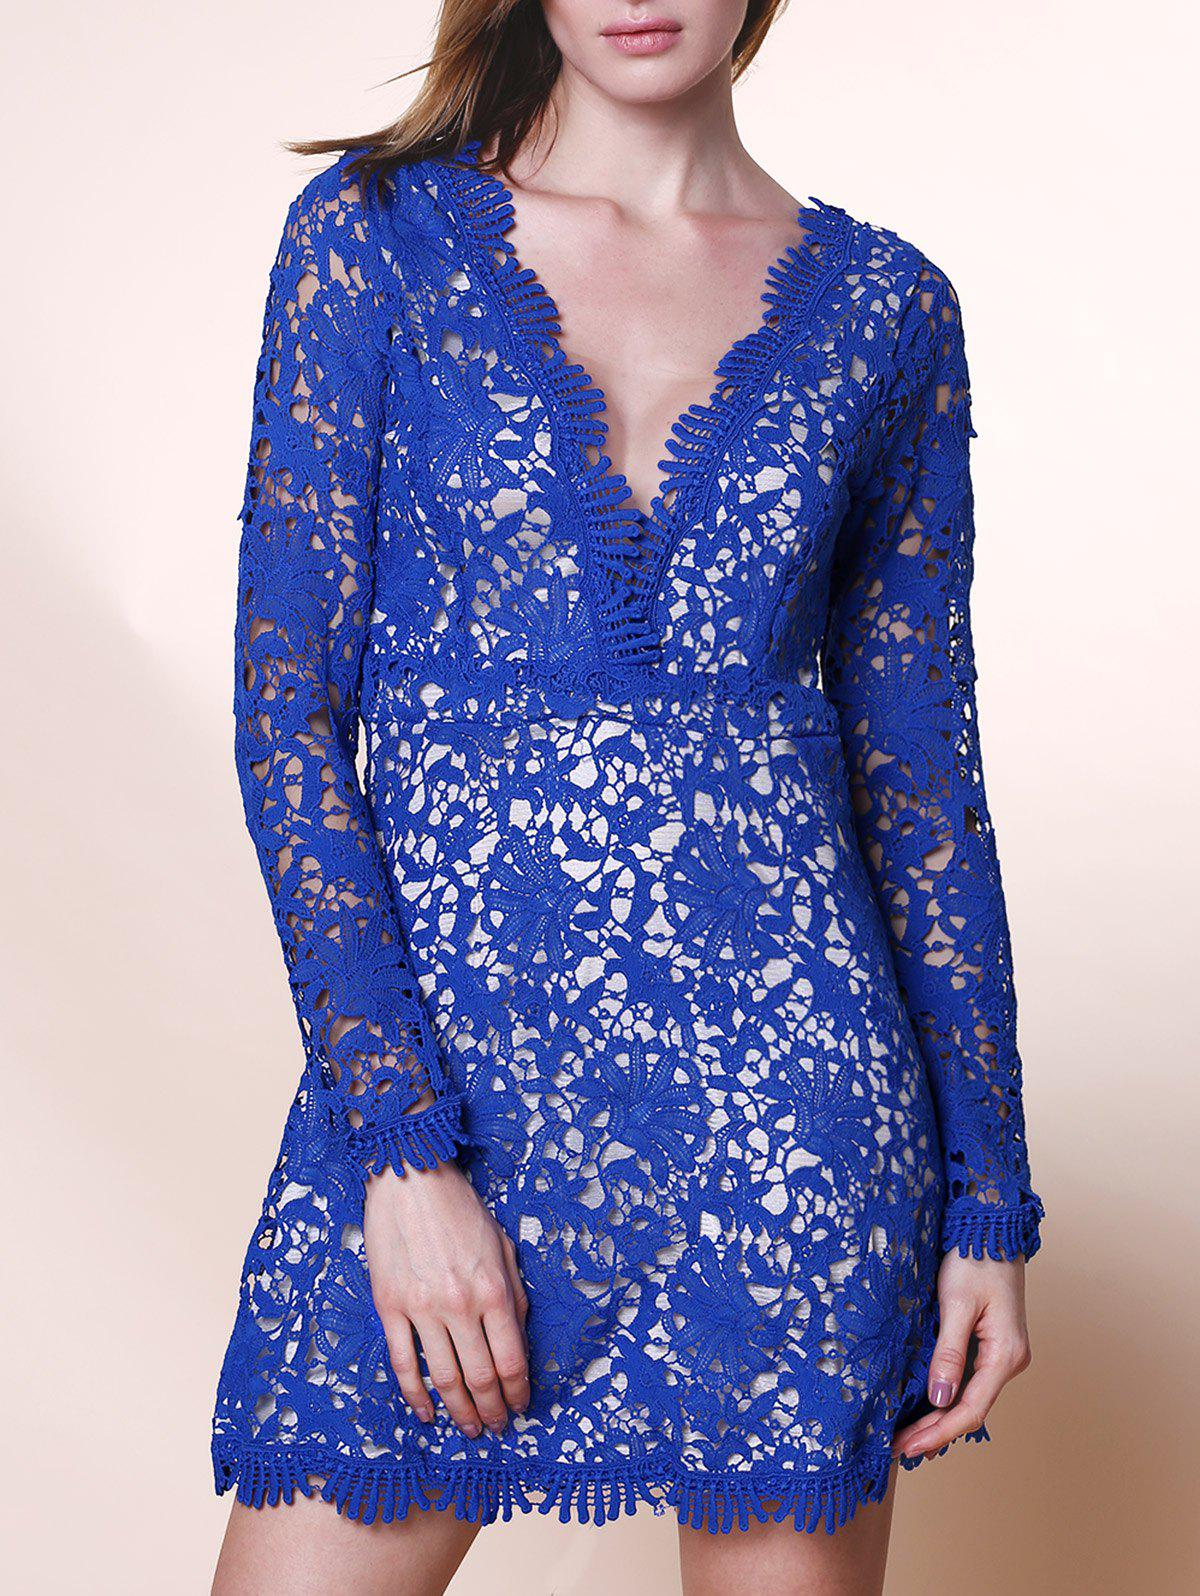 342d7f84fd9a 82% OFF   2019 Mini Plunge Long Sleeve Lace Backless Dress